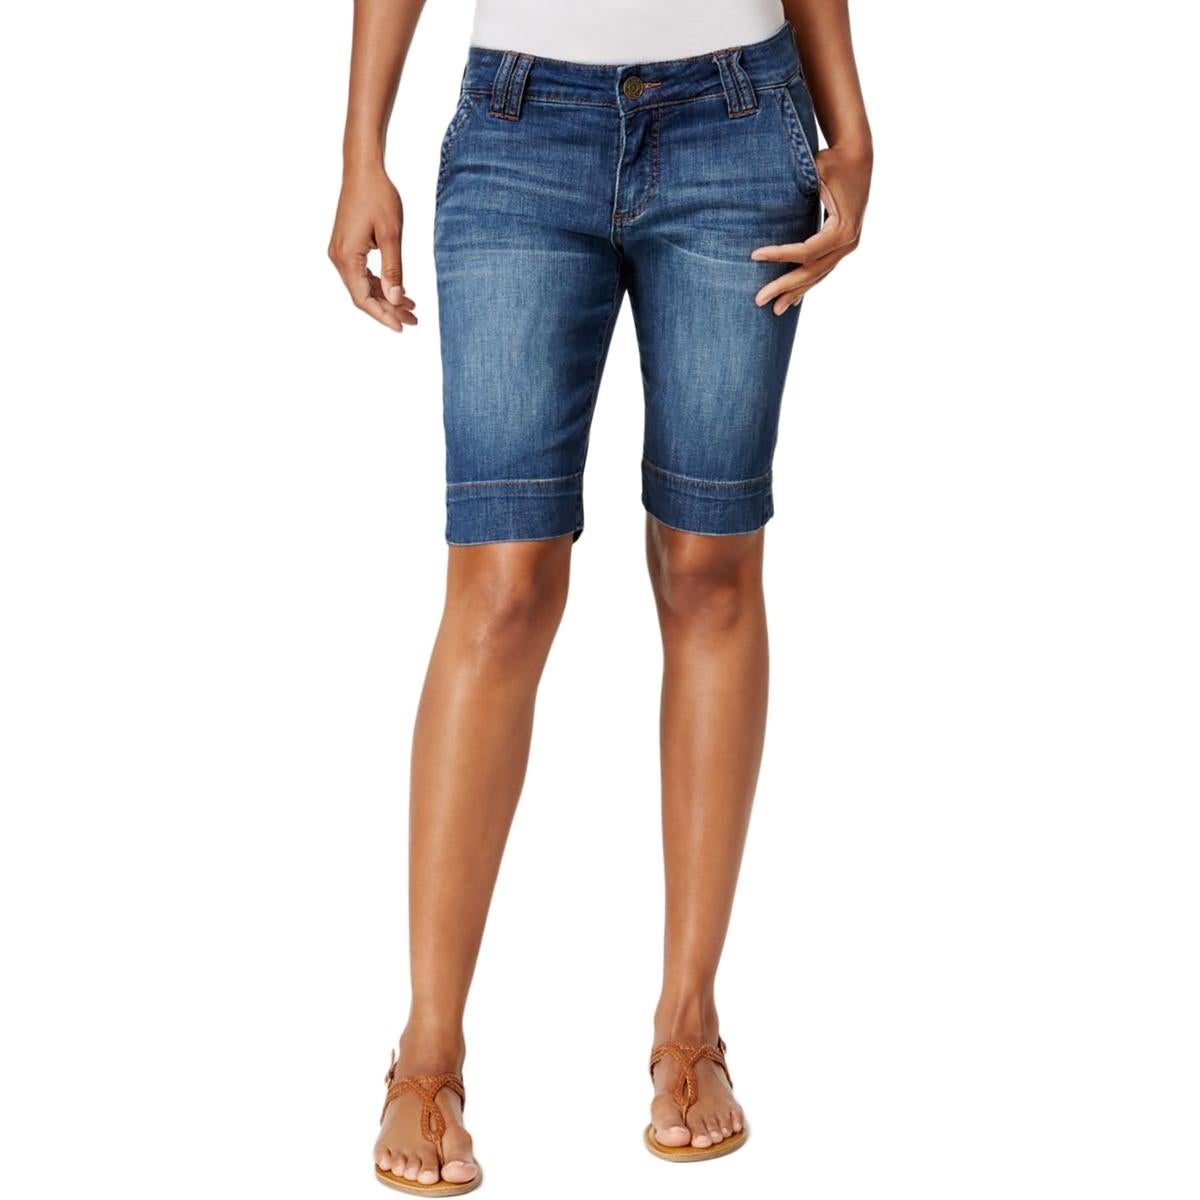 Shorts Kut From The Kloth Bermuda Jean Shorts Womens 4 Dark Wash Denim Longer Length Goods Of Every Description Are Available